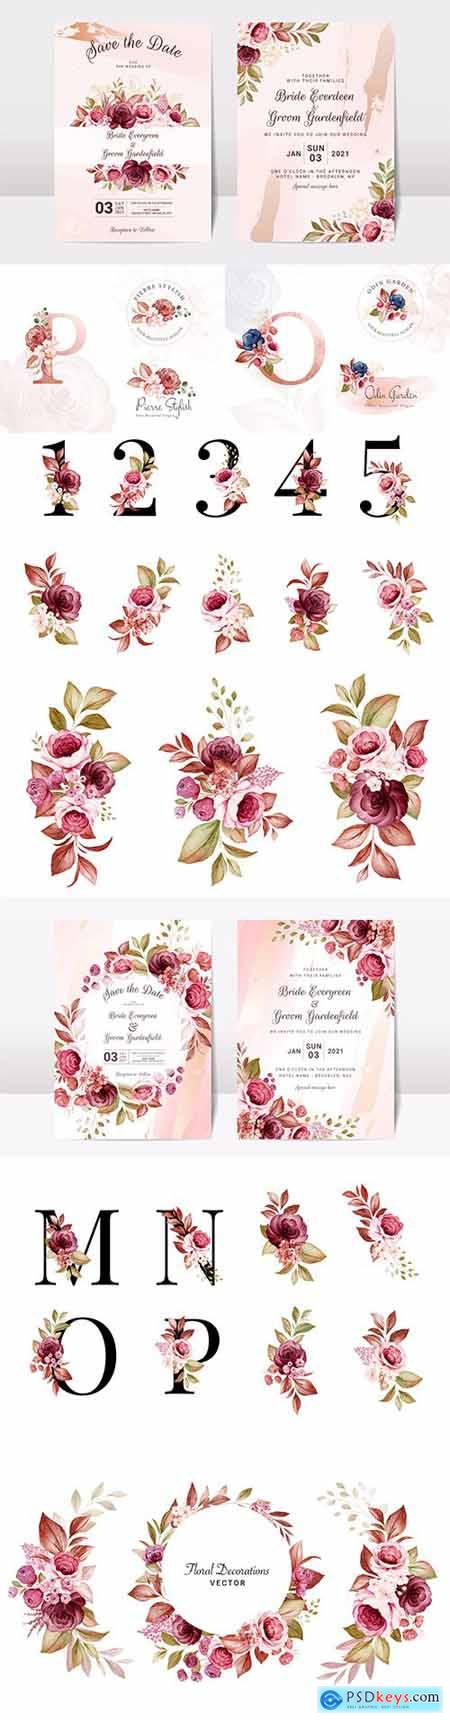 Floral wedding invitation template with elegant burgundy and brown roses